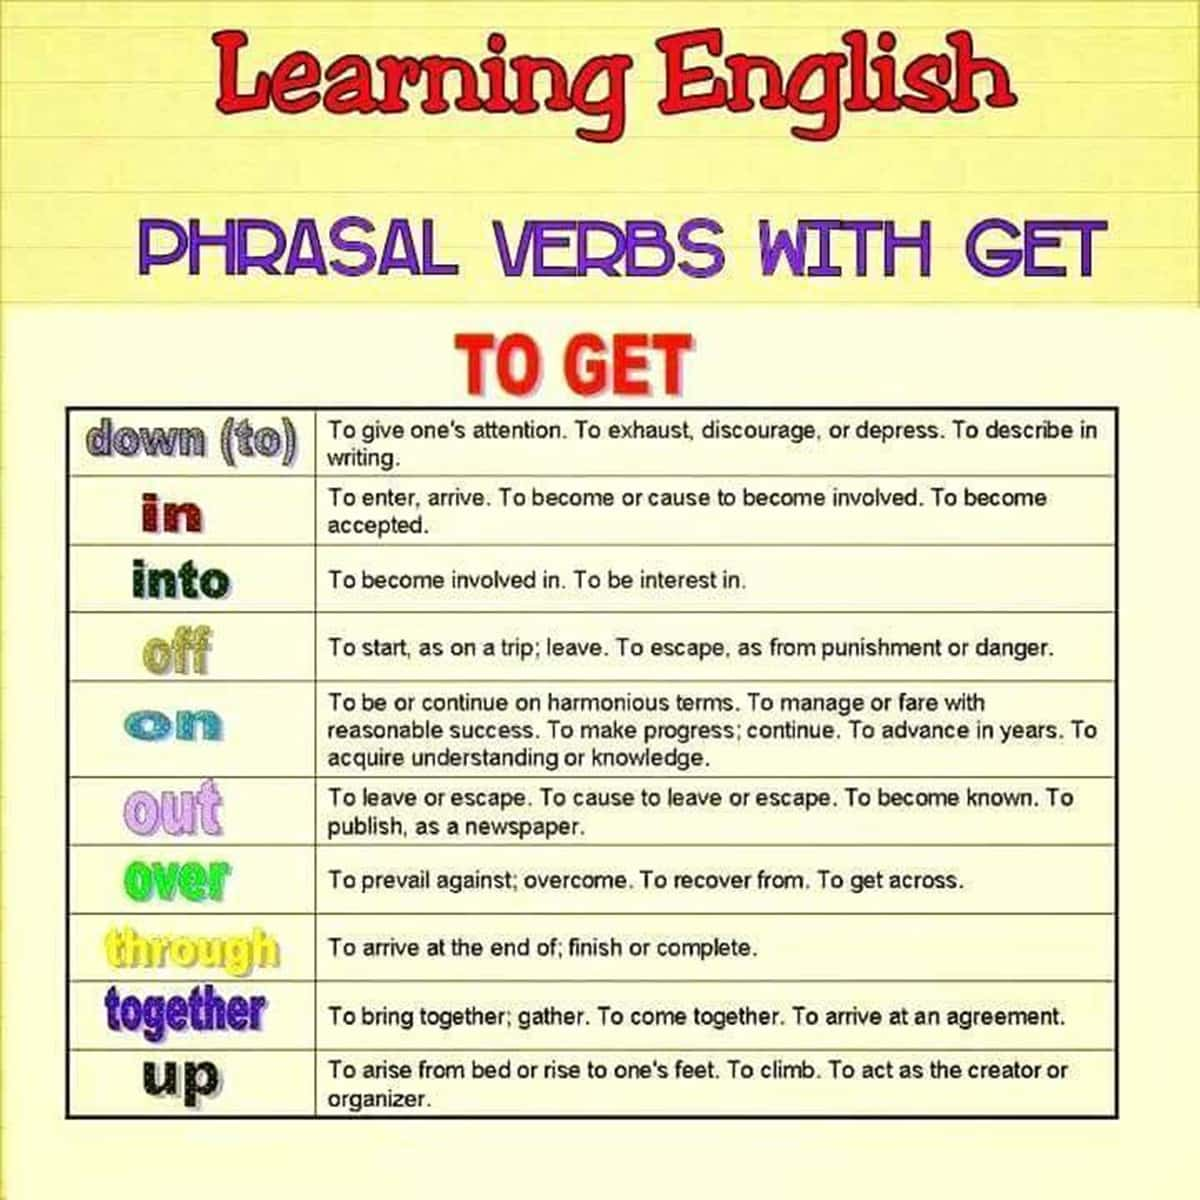 Phrasal Verbs with GET